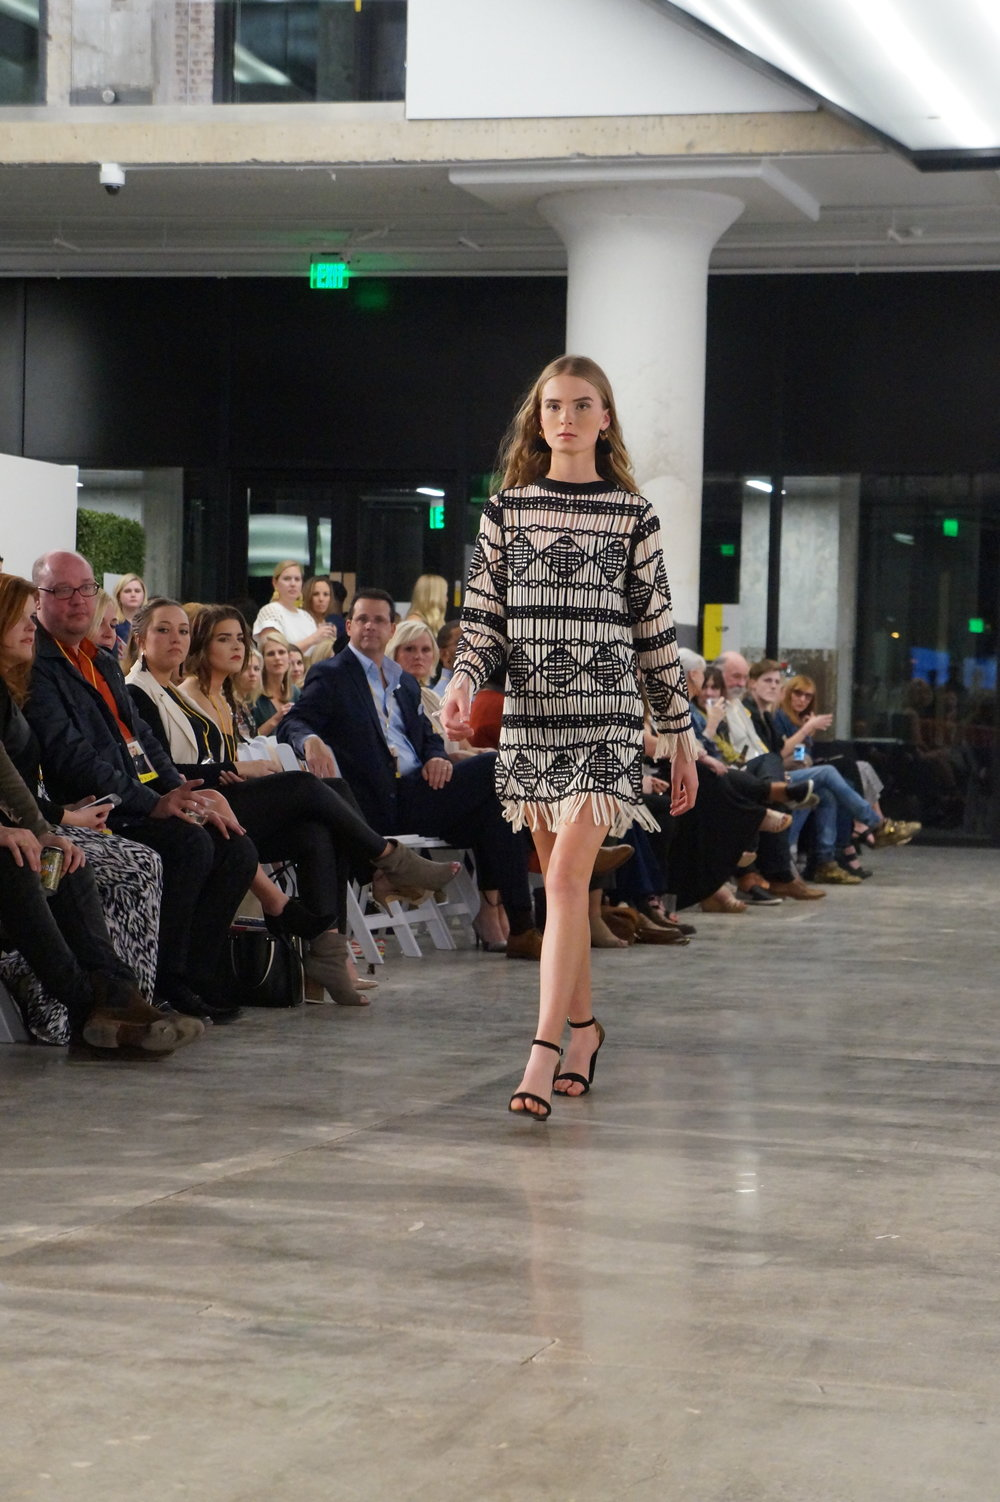 Andrea Fenise Memphis Fashion Blogger shares #memphisfashionweek featured designer's show